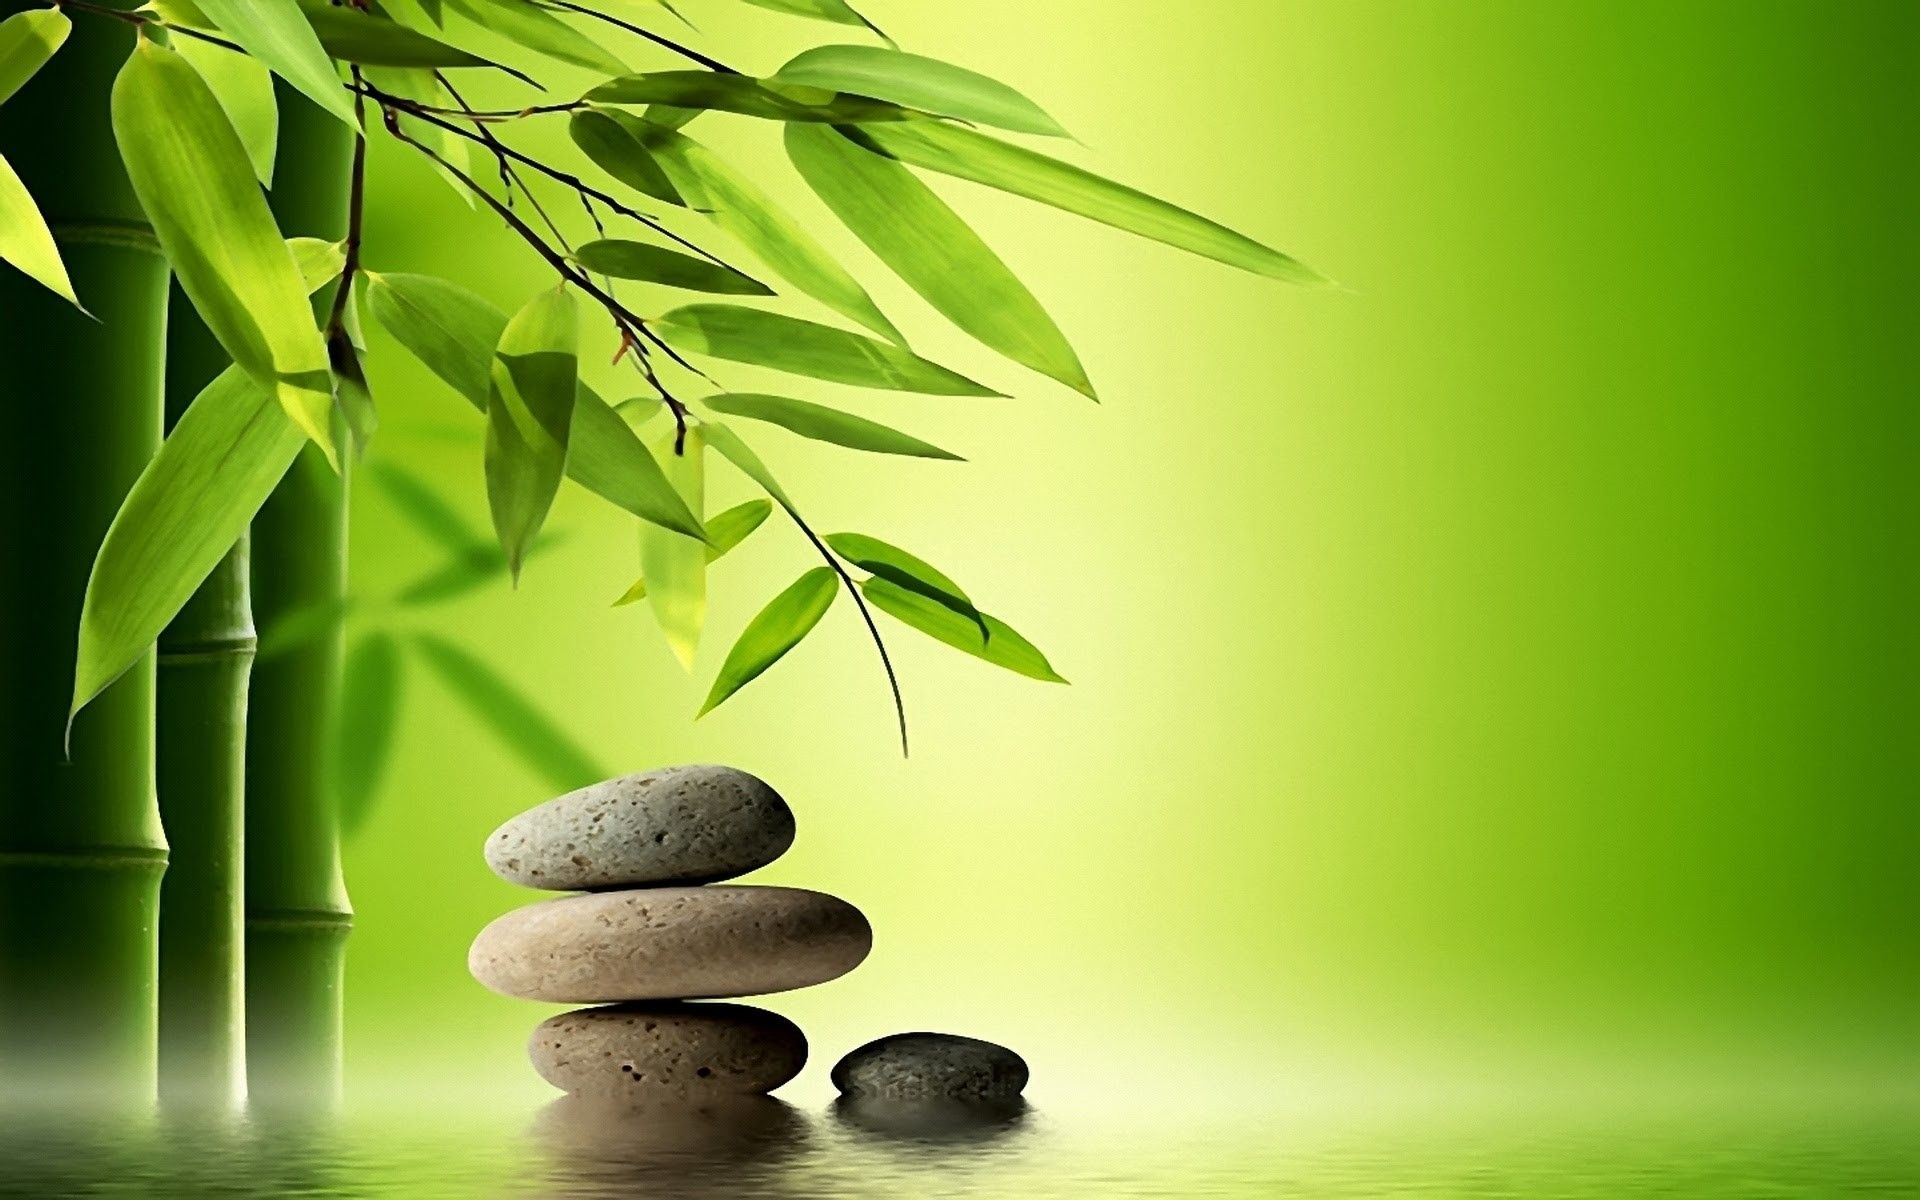 Bamboo tree and special rocks for massage relaxing time